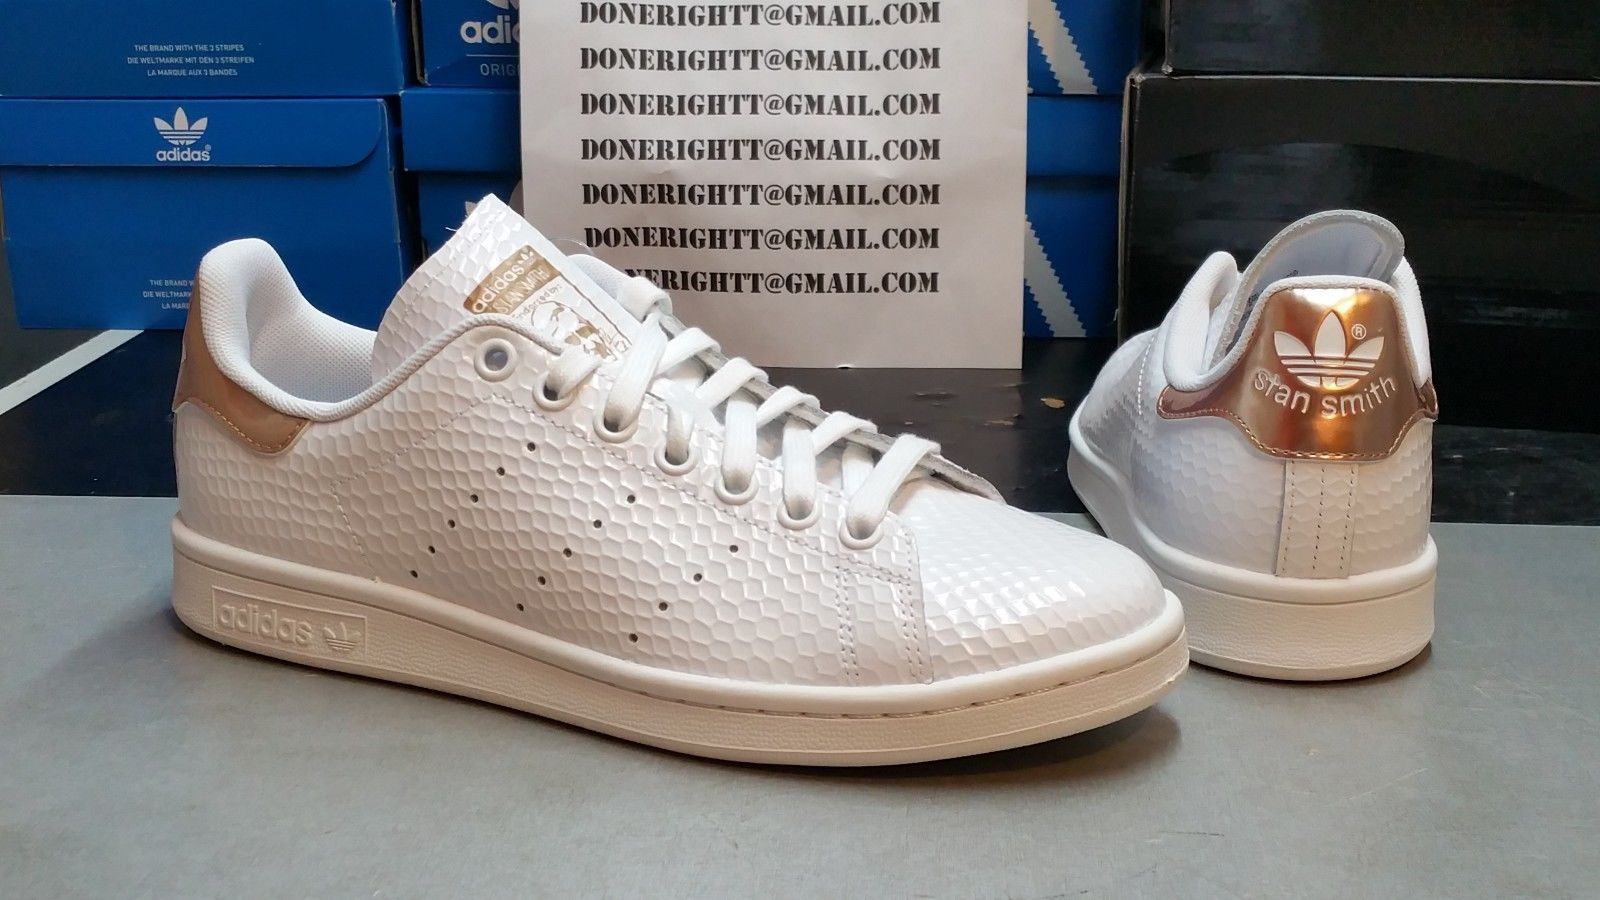 4418e81a1abc Womens Adidas Stan Smith Copper White Kettle Snakeskin Metallic Rose Gold  Yeezy